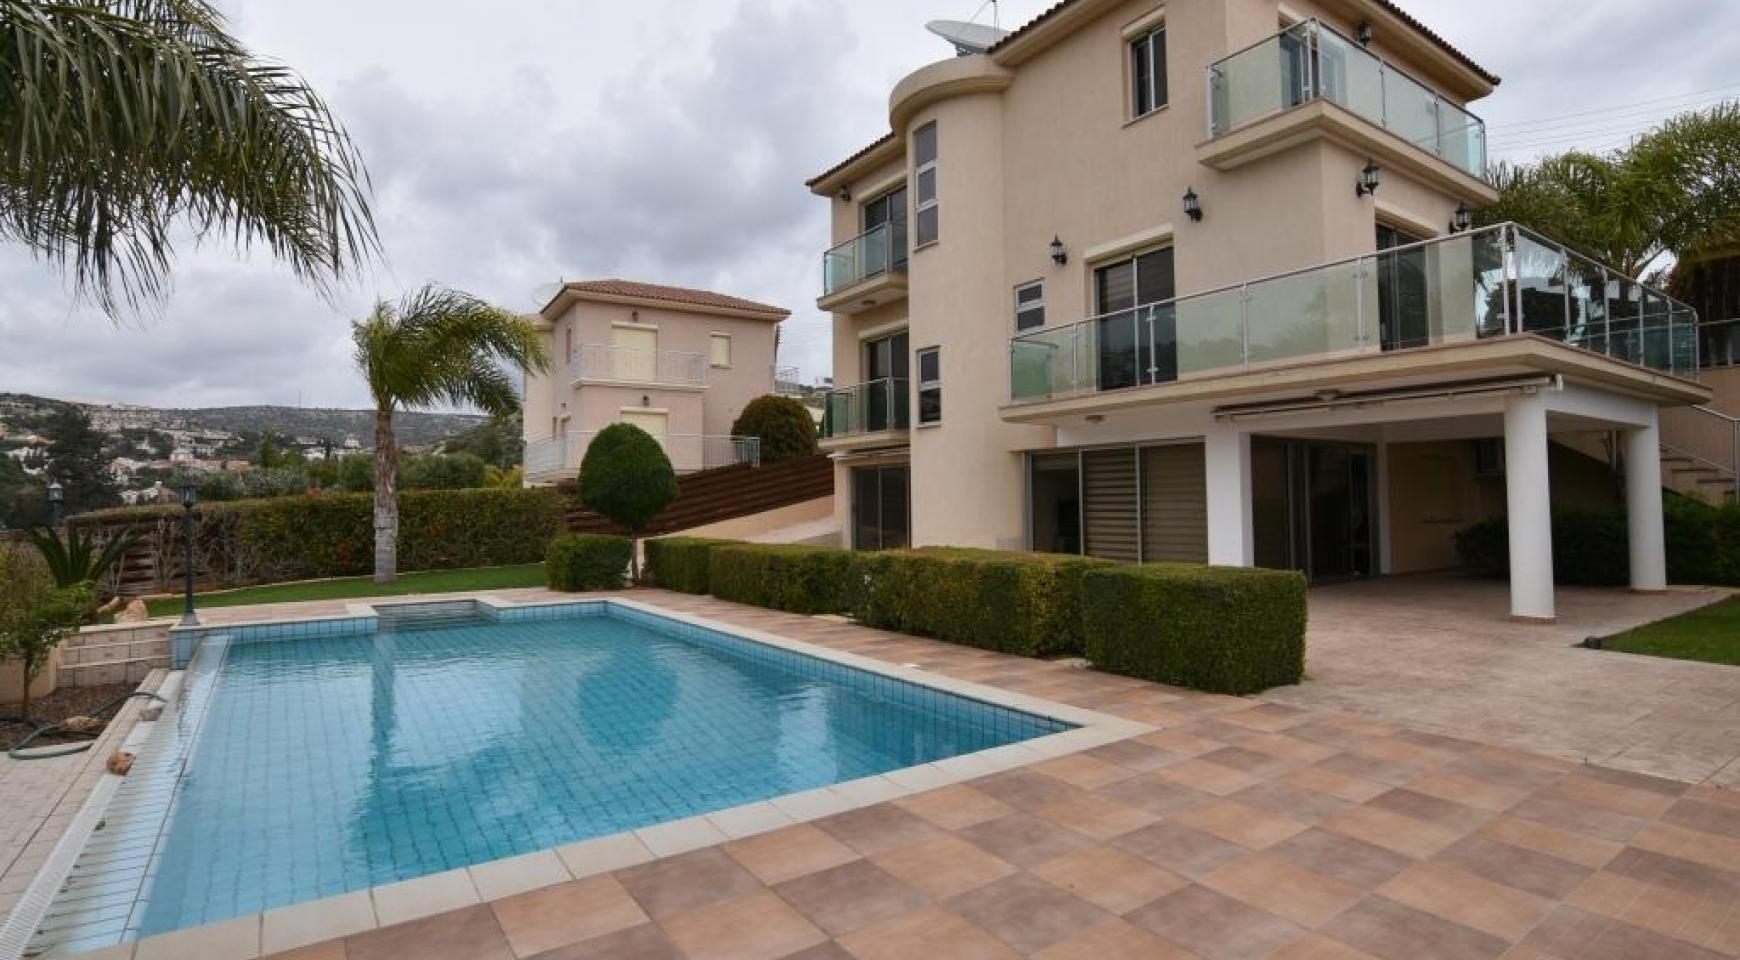 Luxury 4 Bedroom Villa with Stunning Mountain and Sea Views - 1